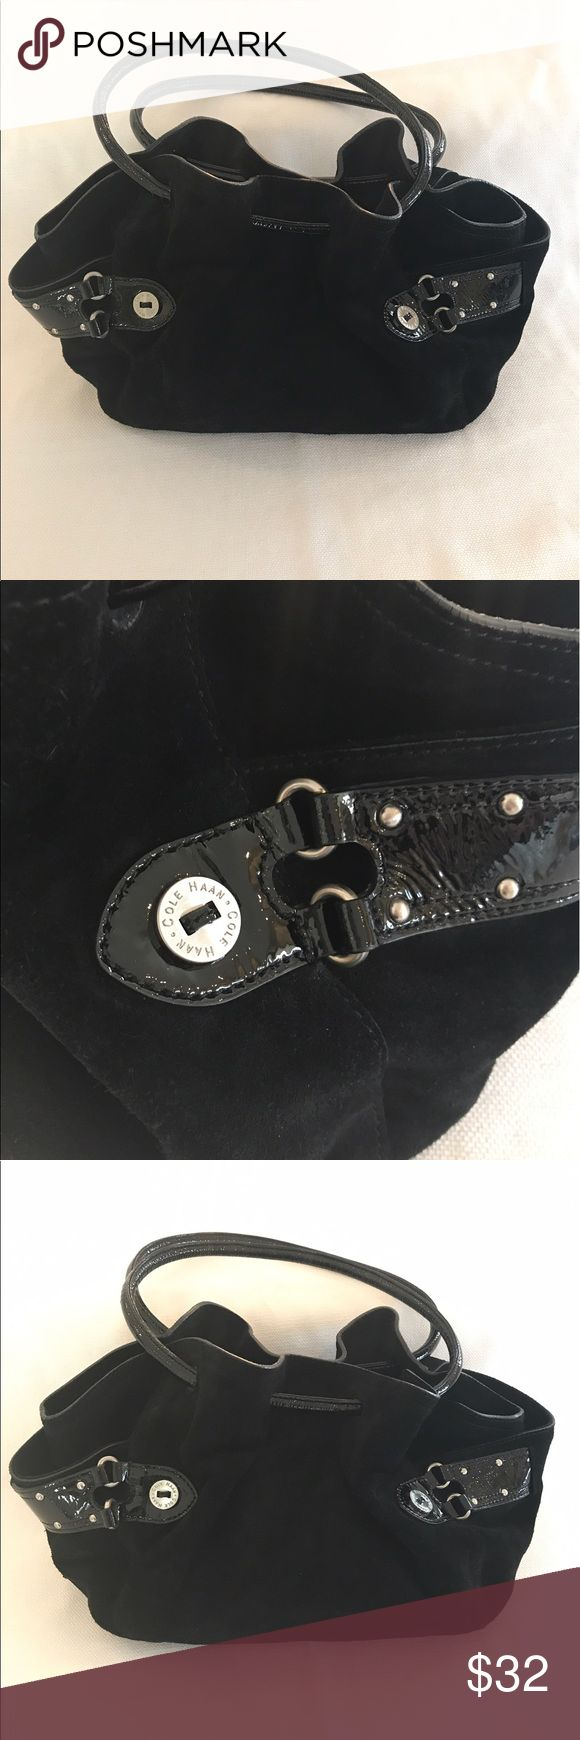 Cole Haan black pocketbook Original Cole Haan black pocketbook in great condition! Medium sized bag! Suede and patent leather. Cole Haan Bags Shoulder Bags